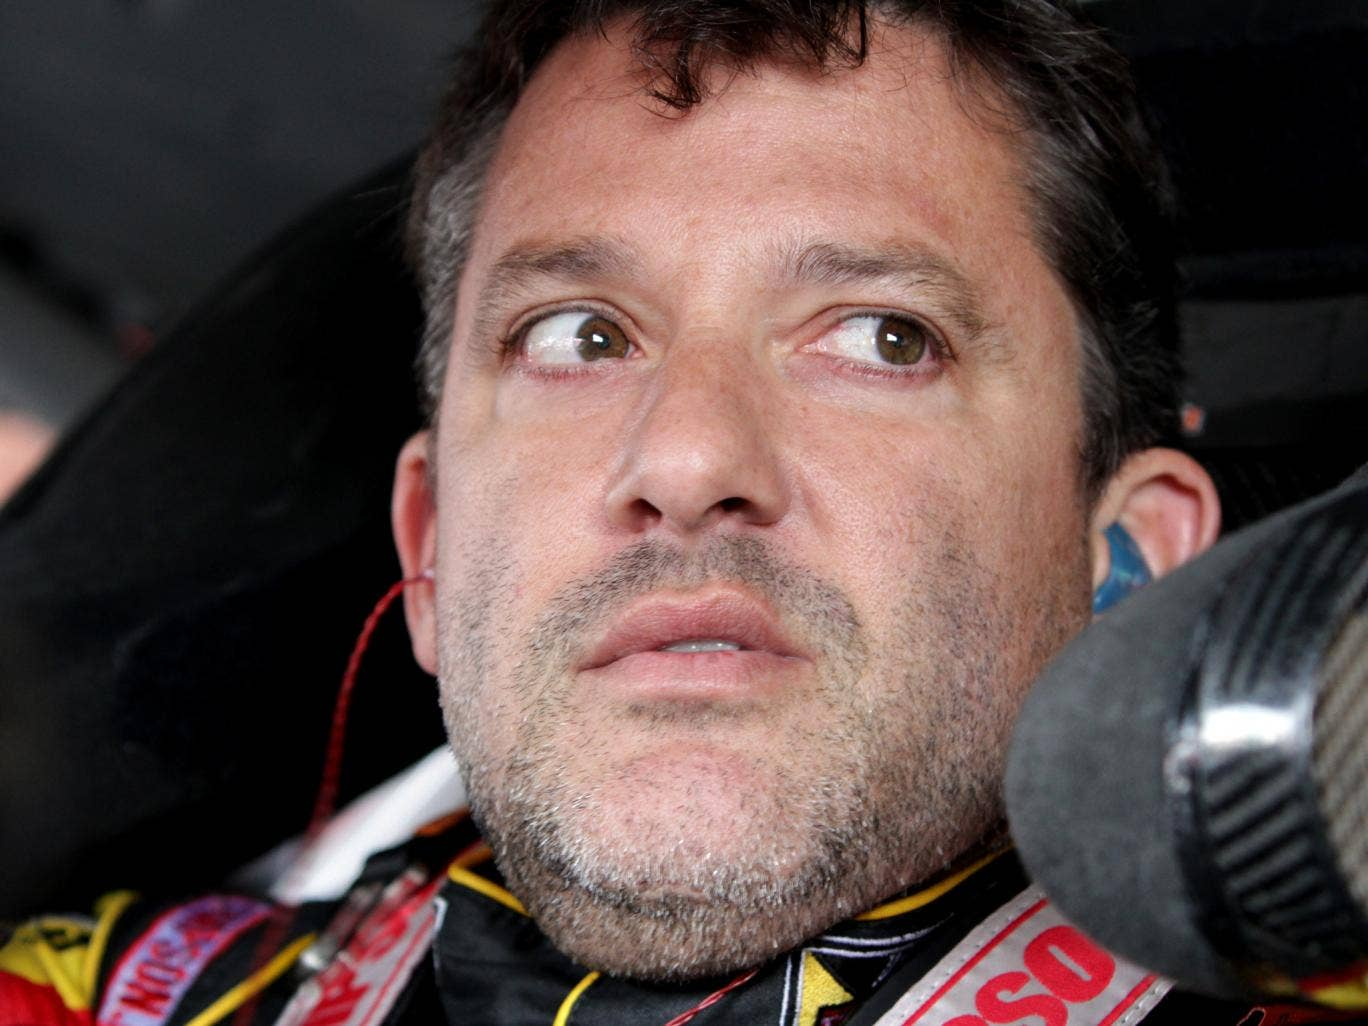 Tony Stewart, pictured sitting in his car during practice for the Nascar Sprint Cup Series at Watkins Glen, New York on 8 August  2014